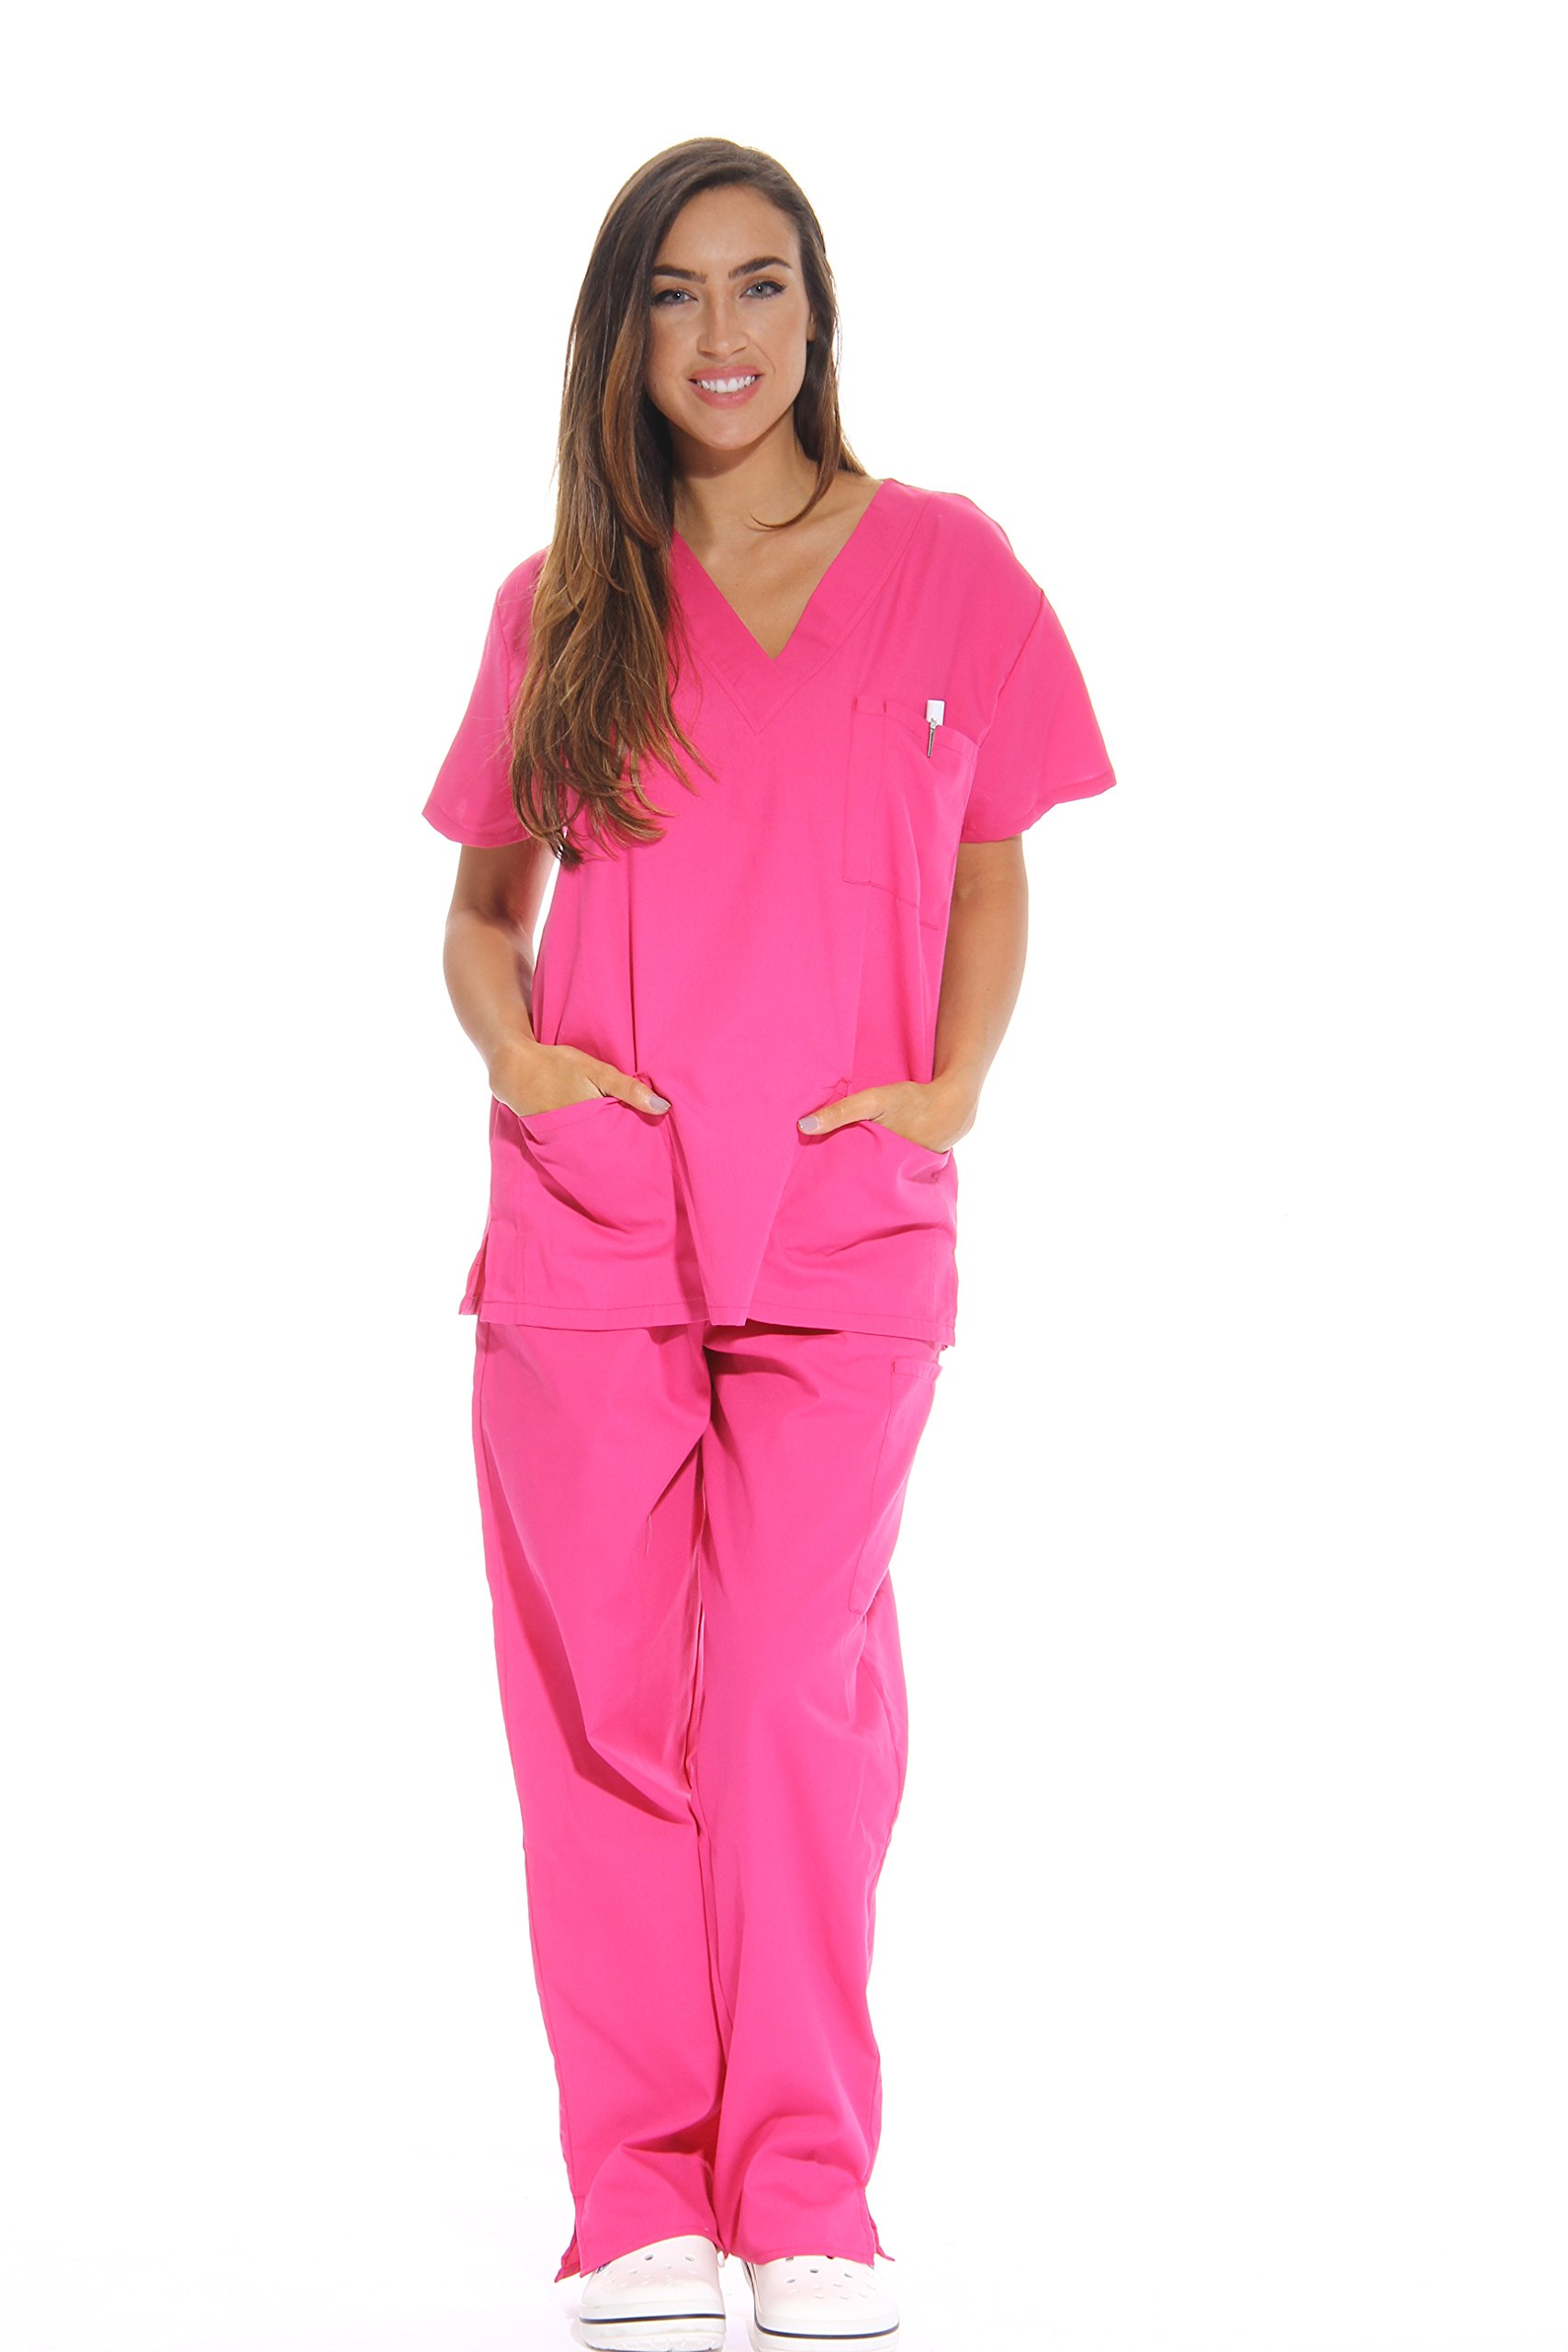 Just Love Women's Scrub Sets Six Pocket Medical Scrubs (V-Neck With Cargo Pant), Fuchsia, Small